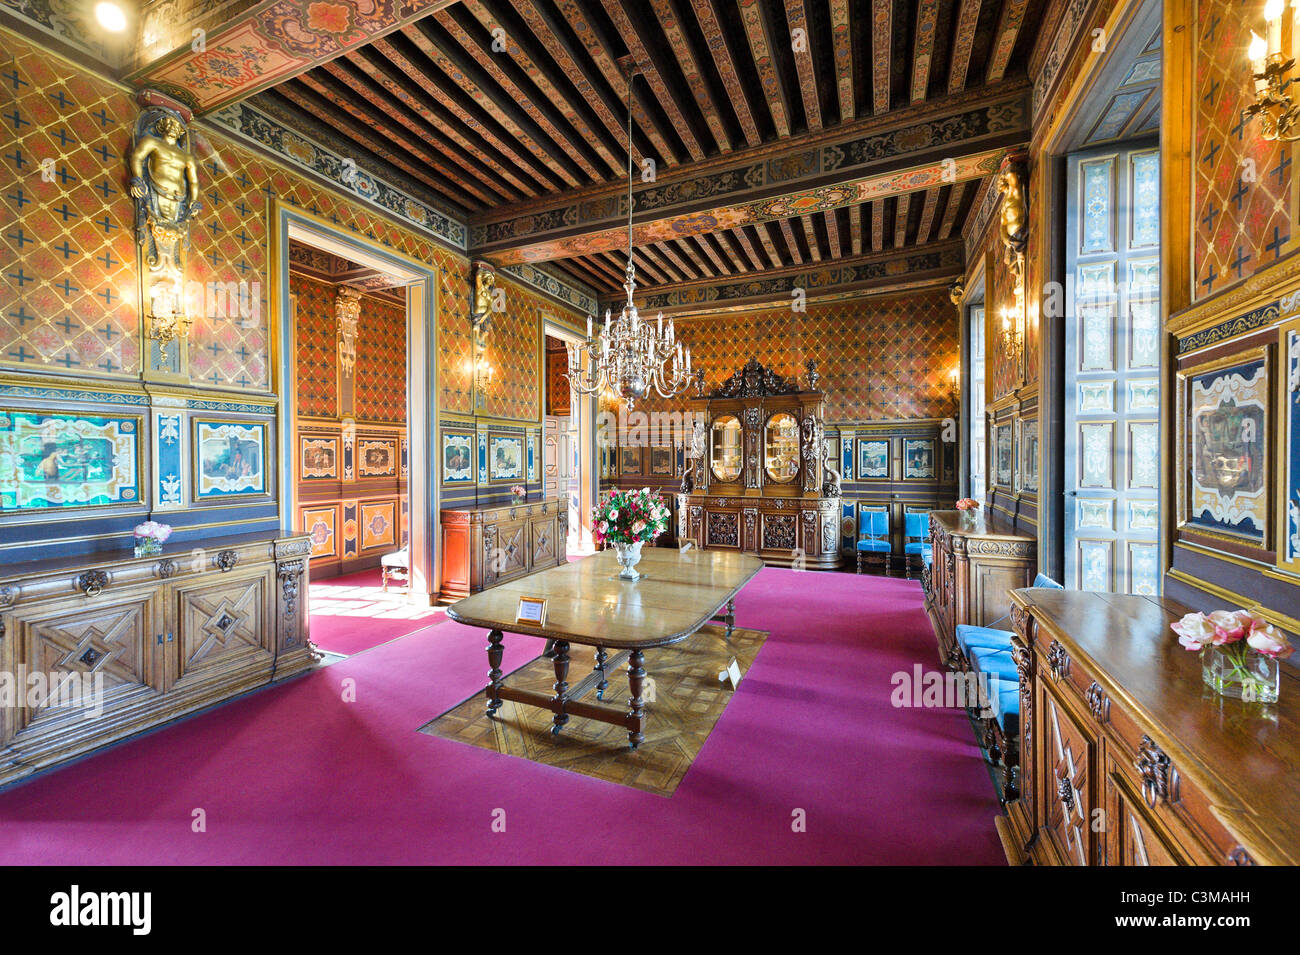 The Dining Room, Chateau de Cheverny, Loire Valley, Touraine, France - Stock Image